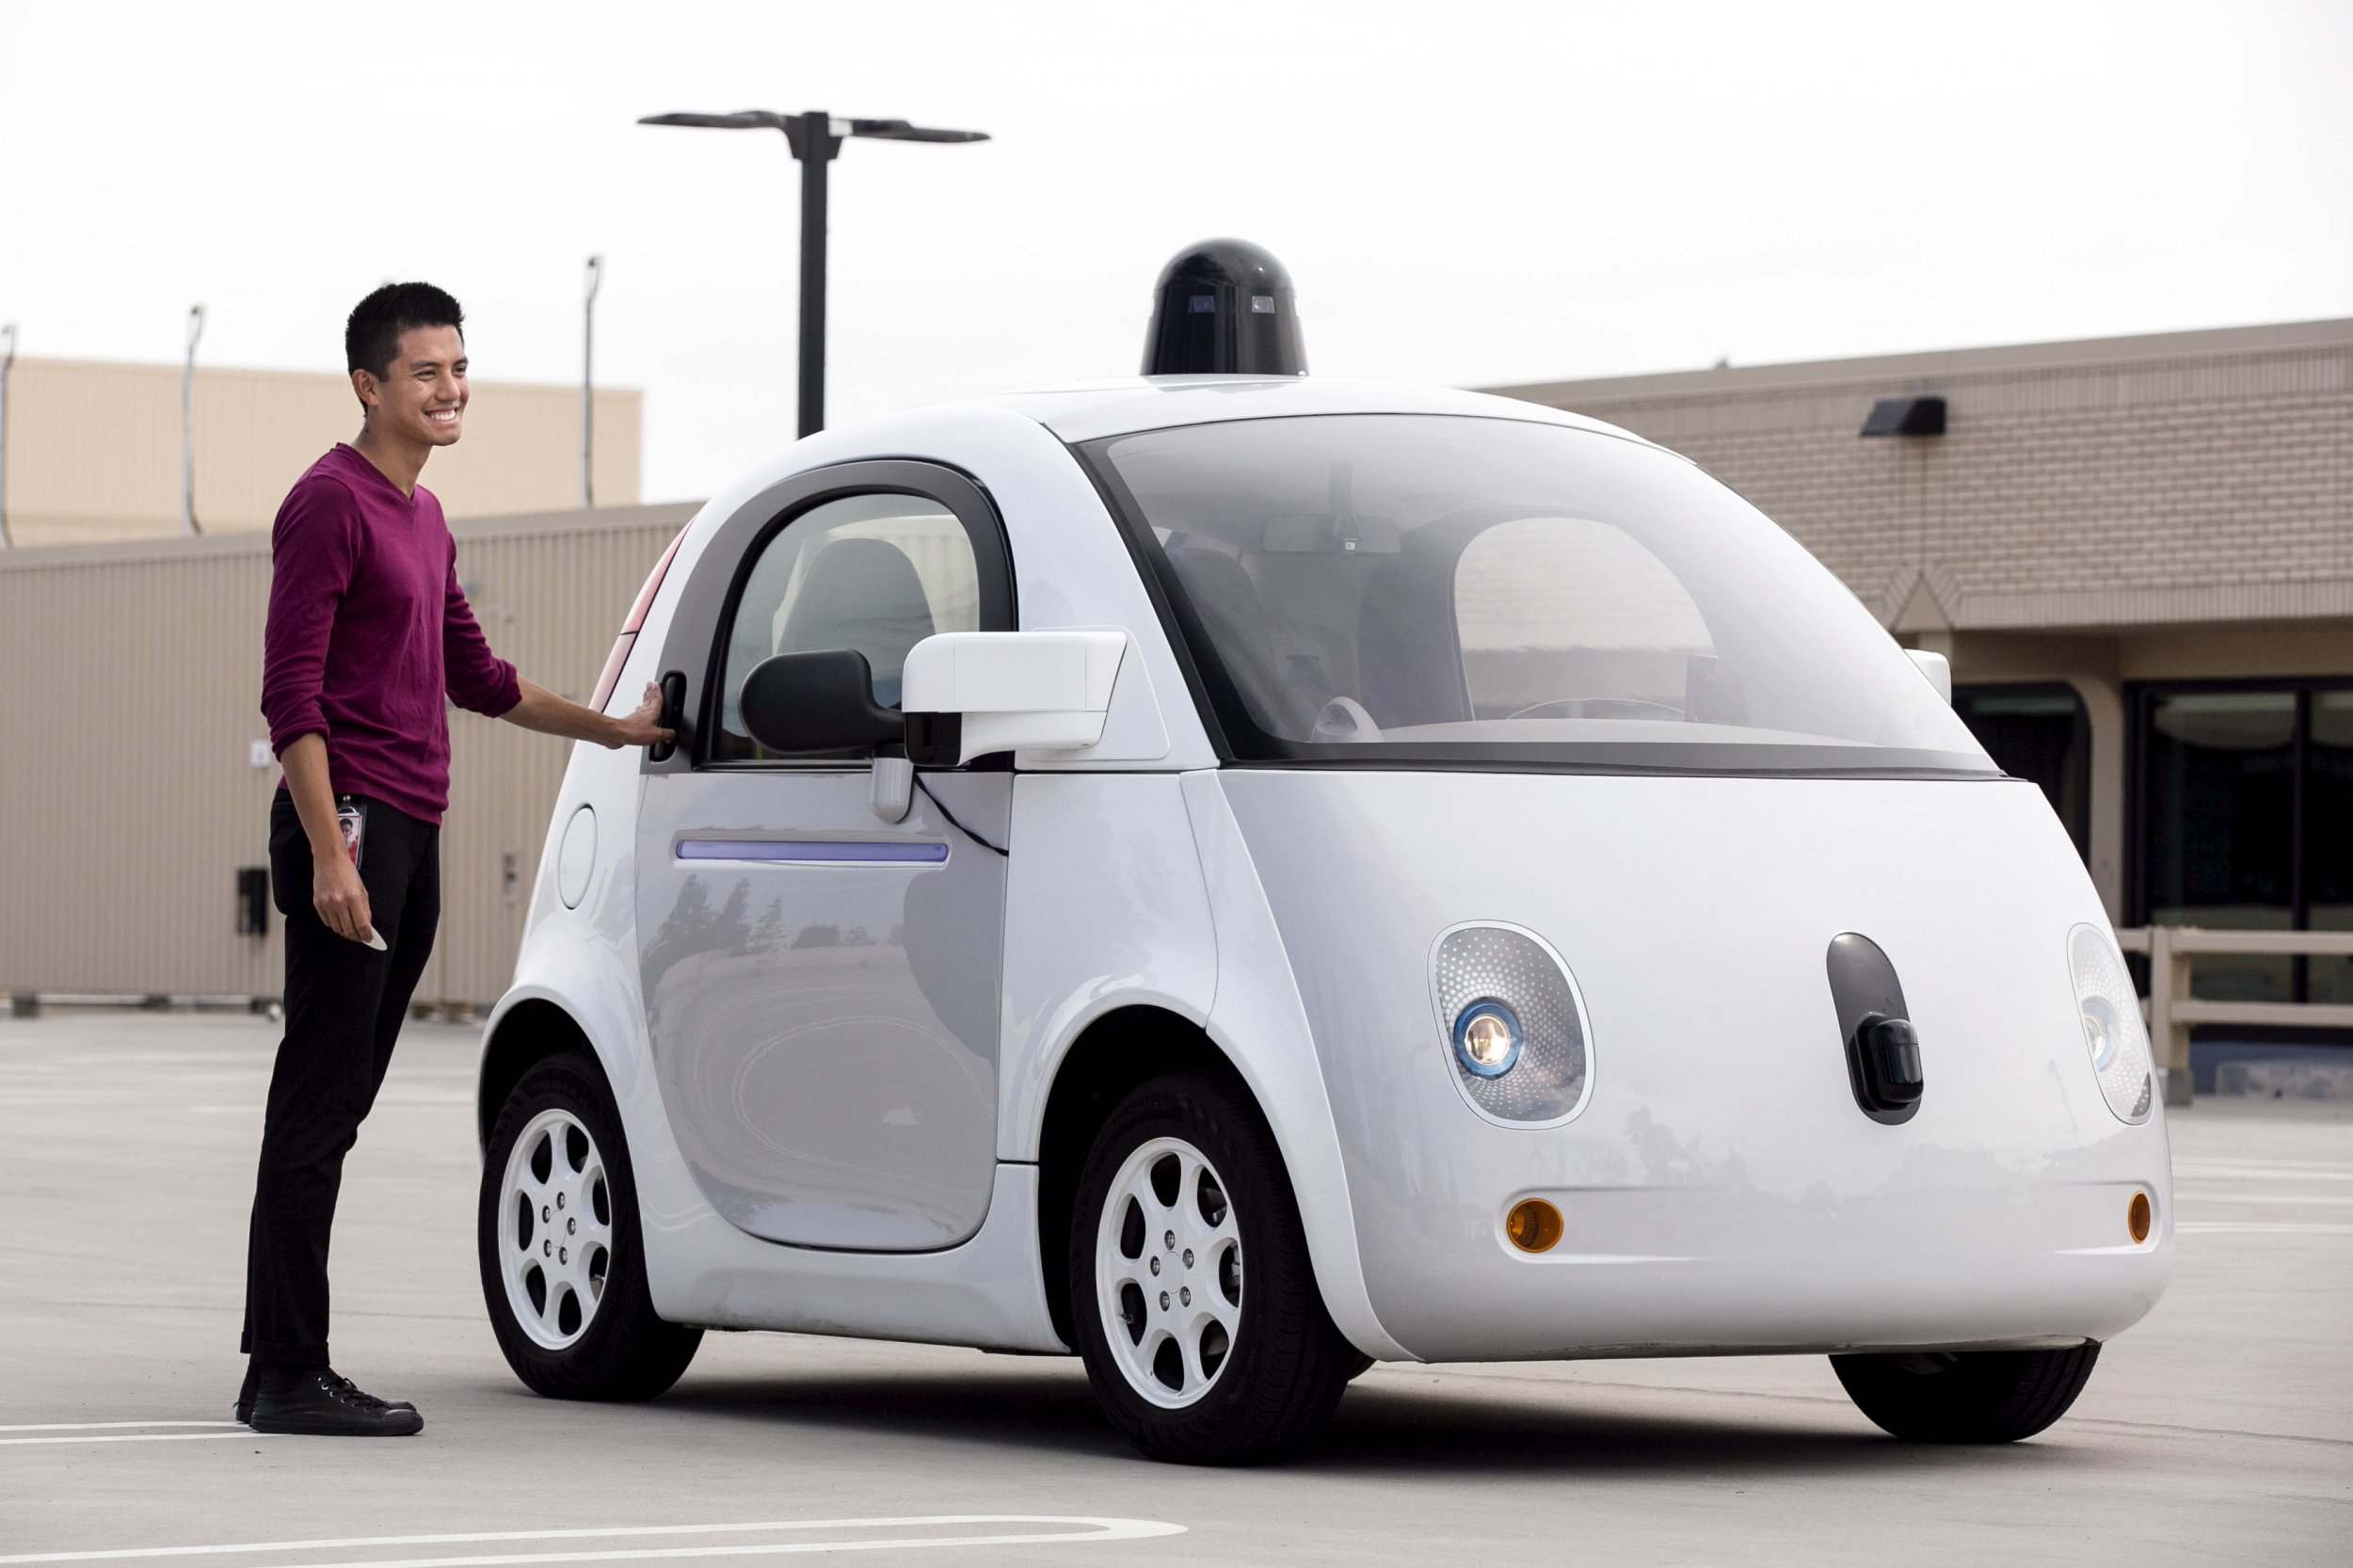 When Will We Know Self Driving Cars Are Safe